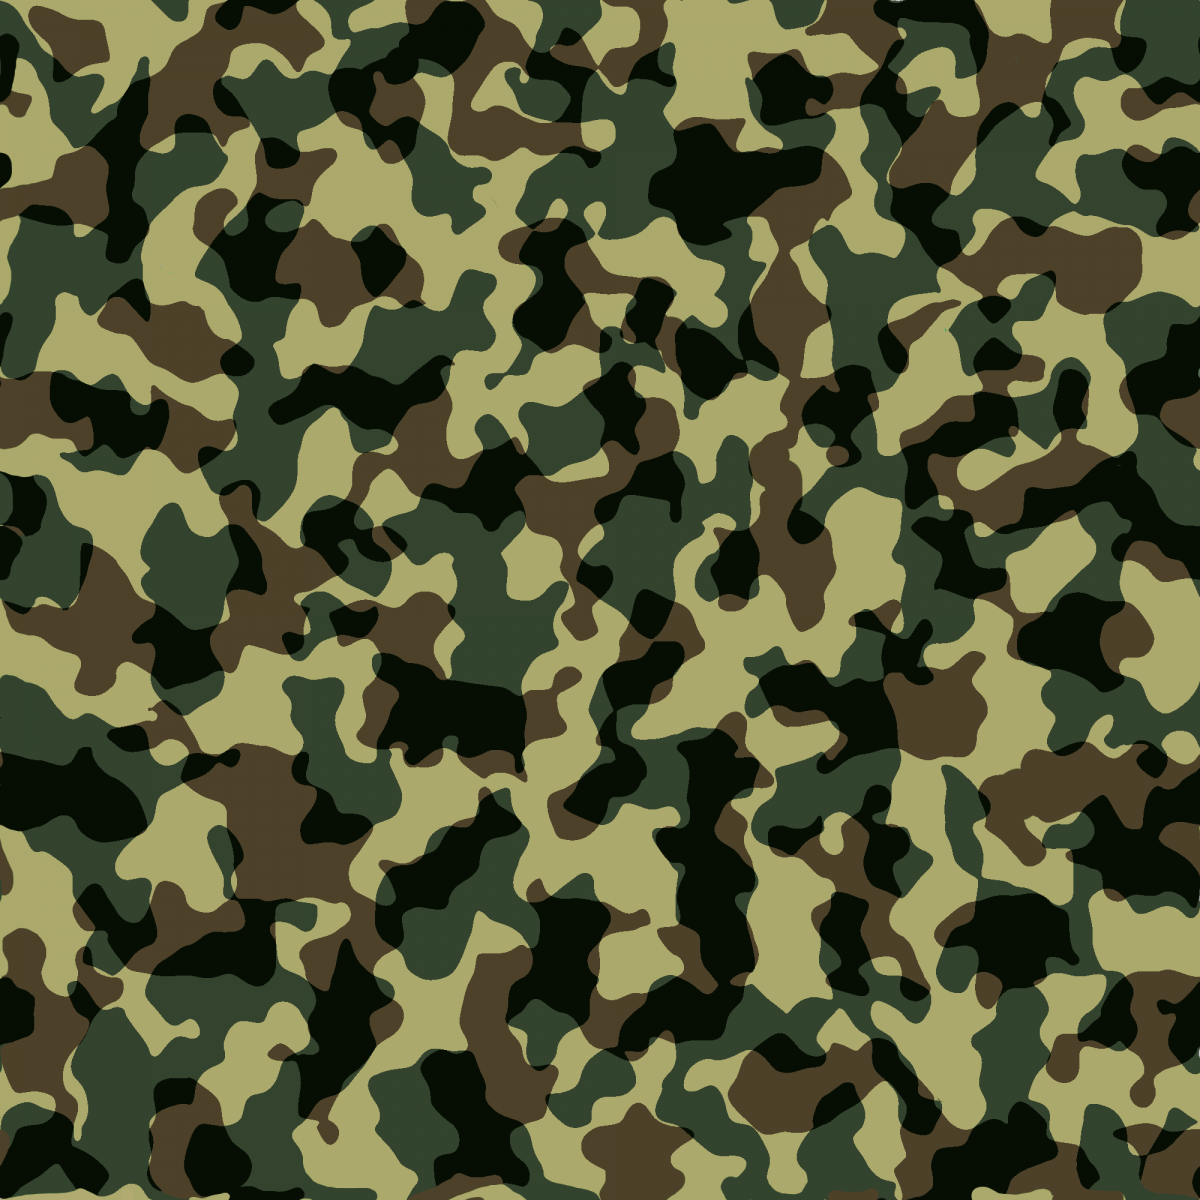 Camouflage_pattern_texture.png